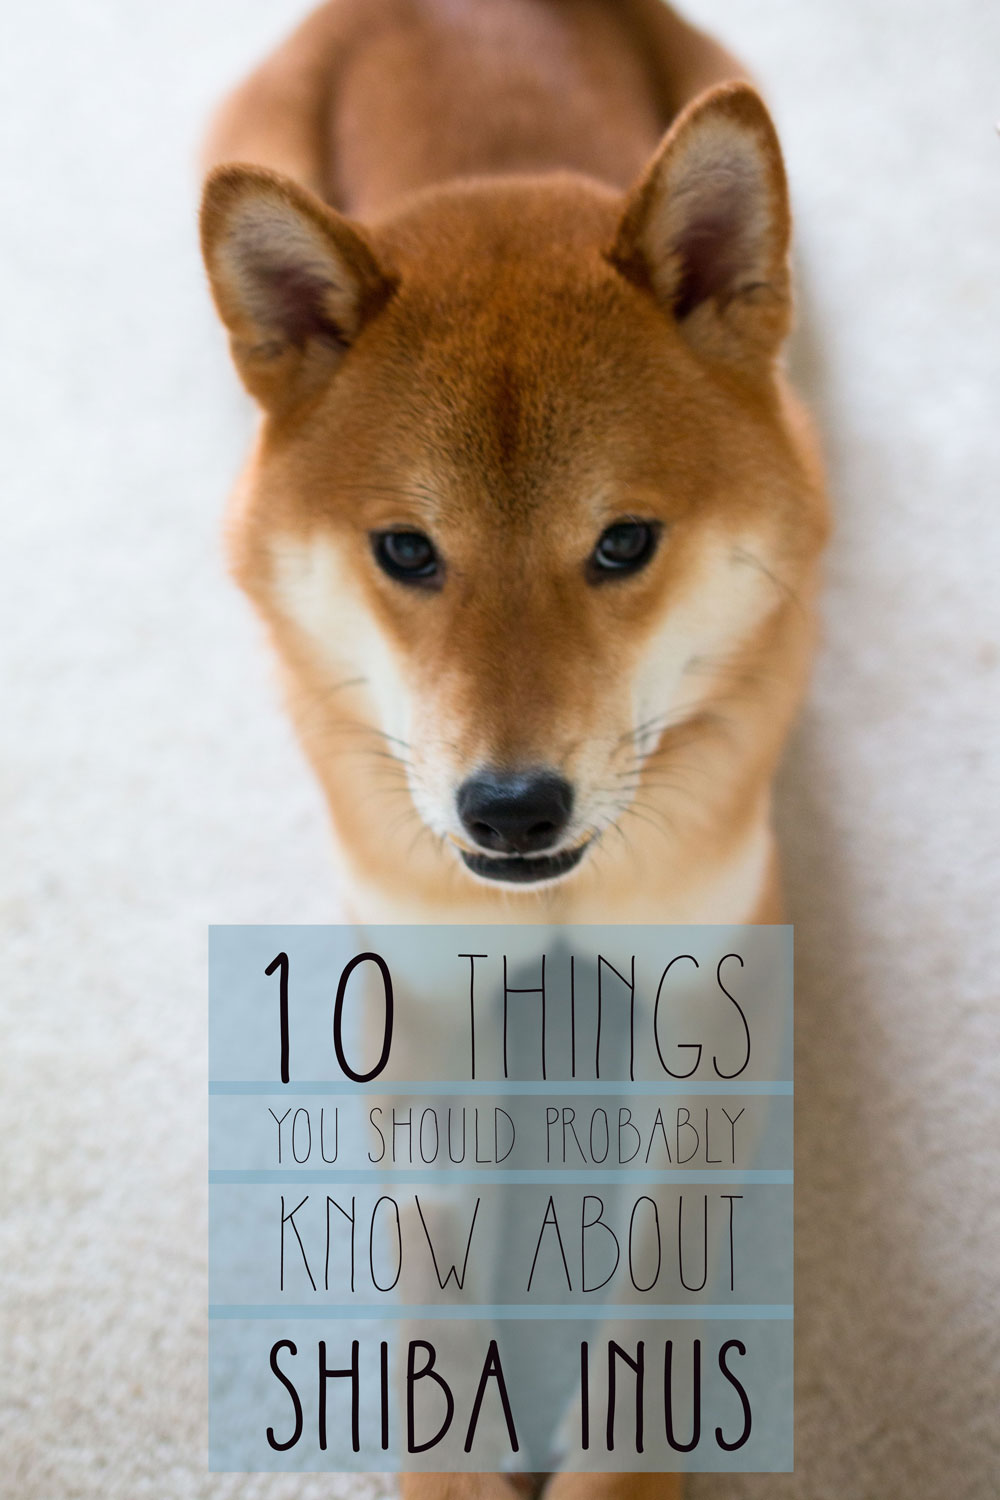 Are-you-considering-a-Shiba-Inu-as-a-pet-Straight-from-an-owner-learn-all-about-the-Shiba-Inu-temp-wallpaper-wpc9002340